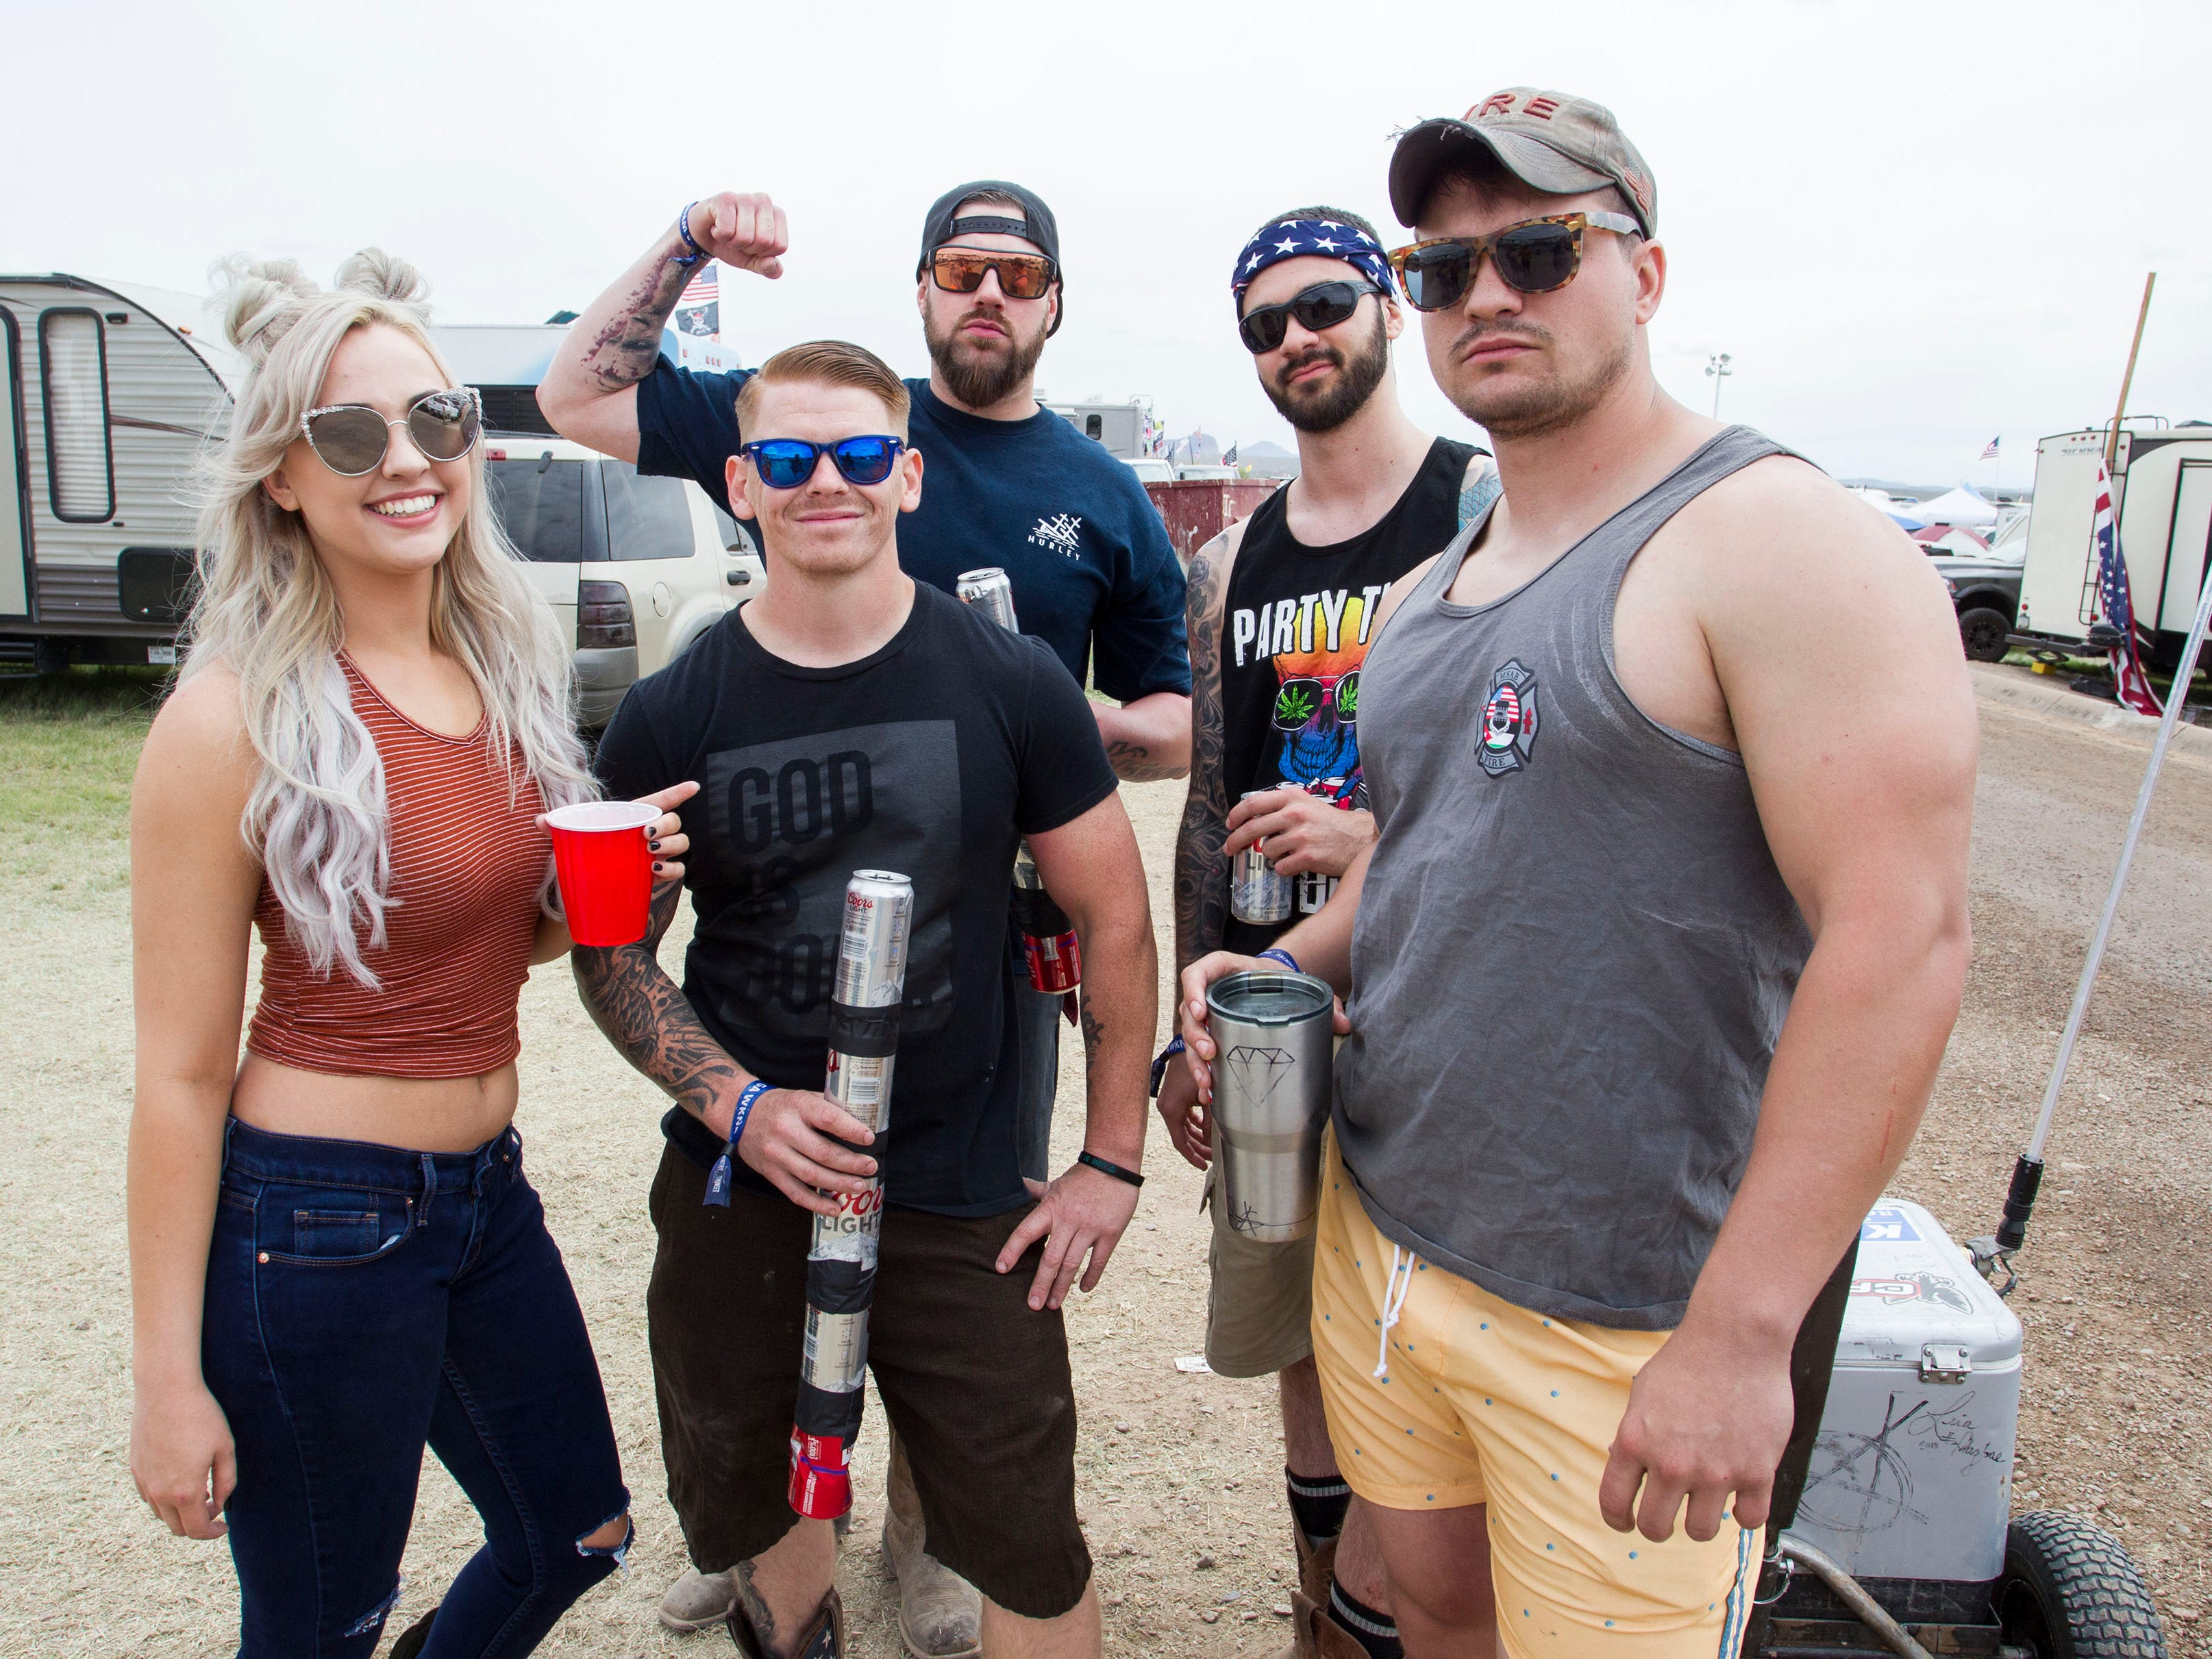 Party-goers pose as the day gets underway at Country Thunder Arizona on April 12, 2019, in Florence, Ariz.